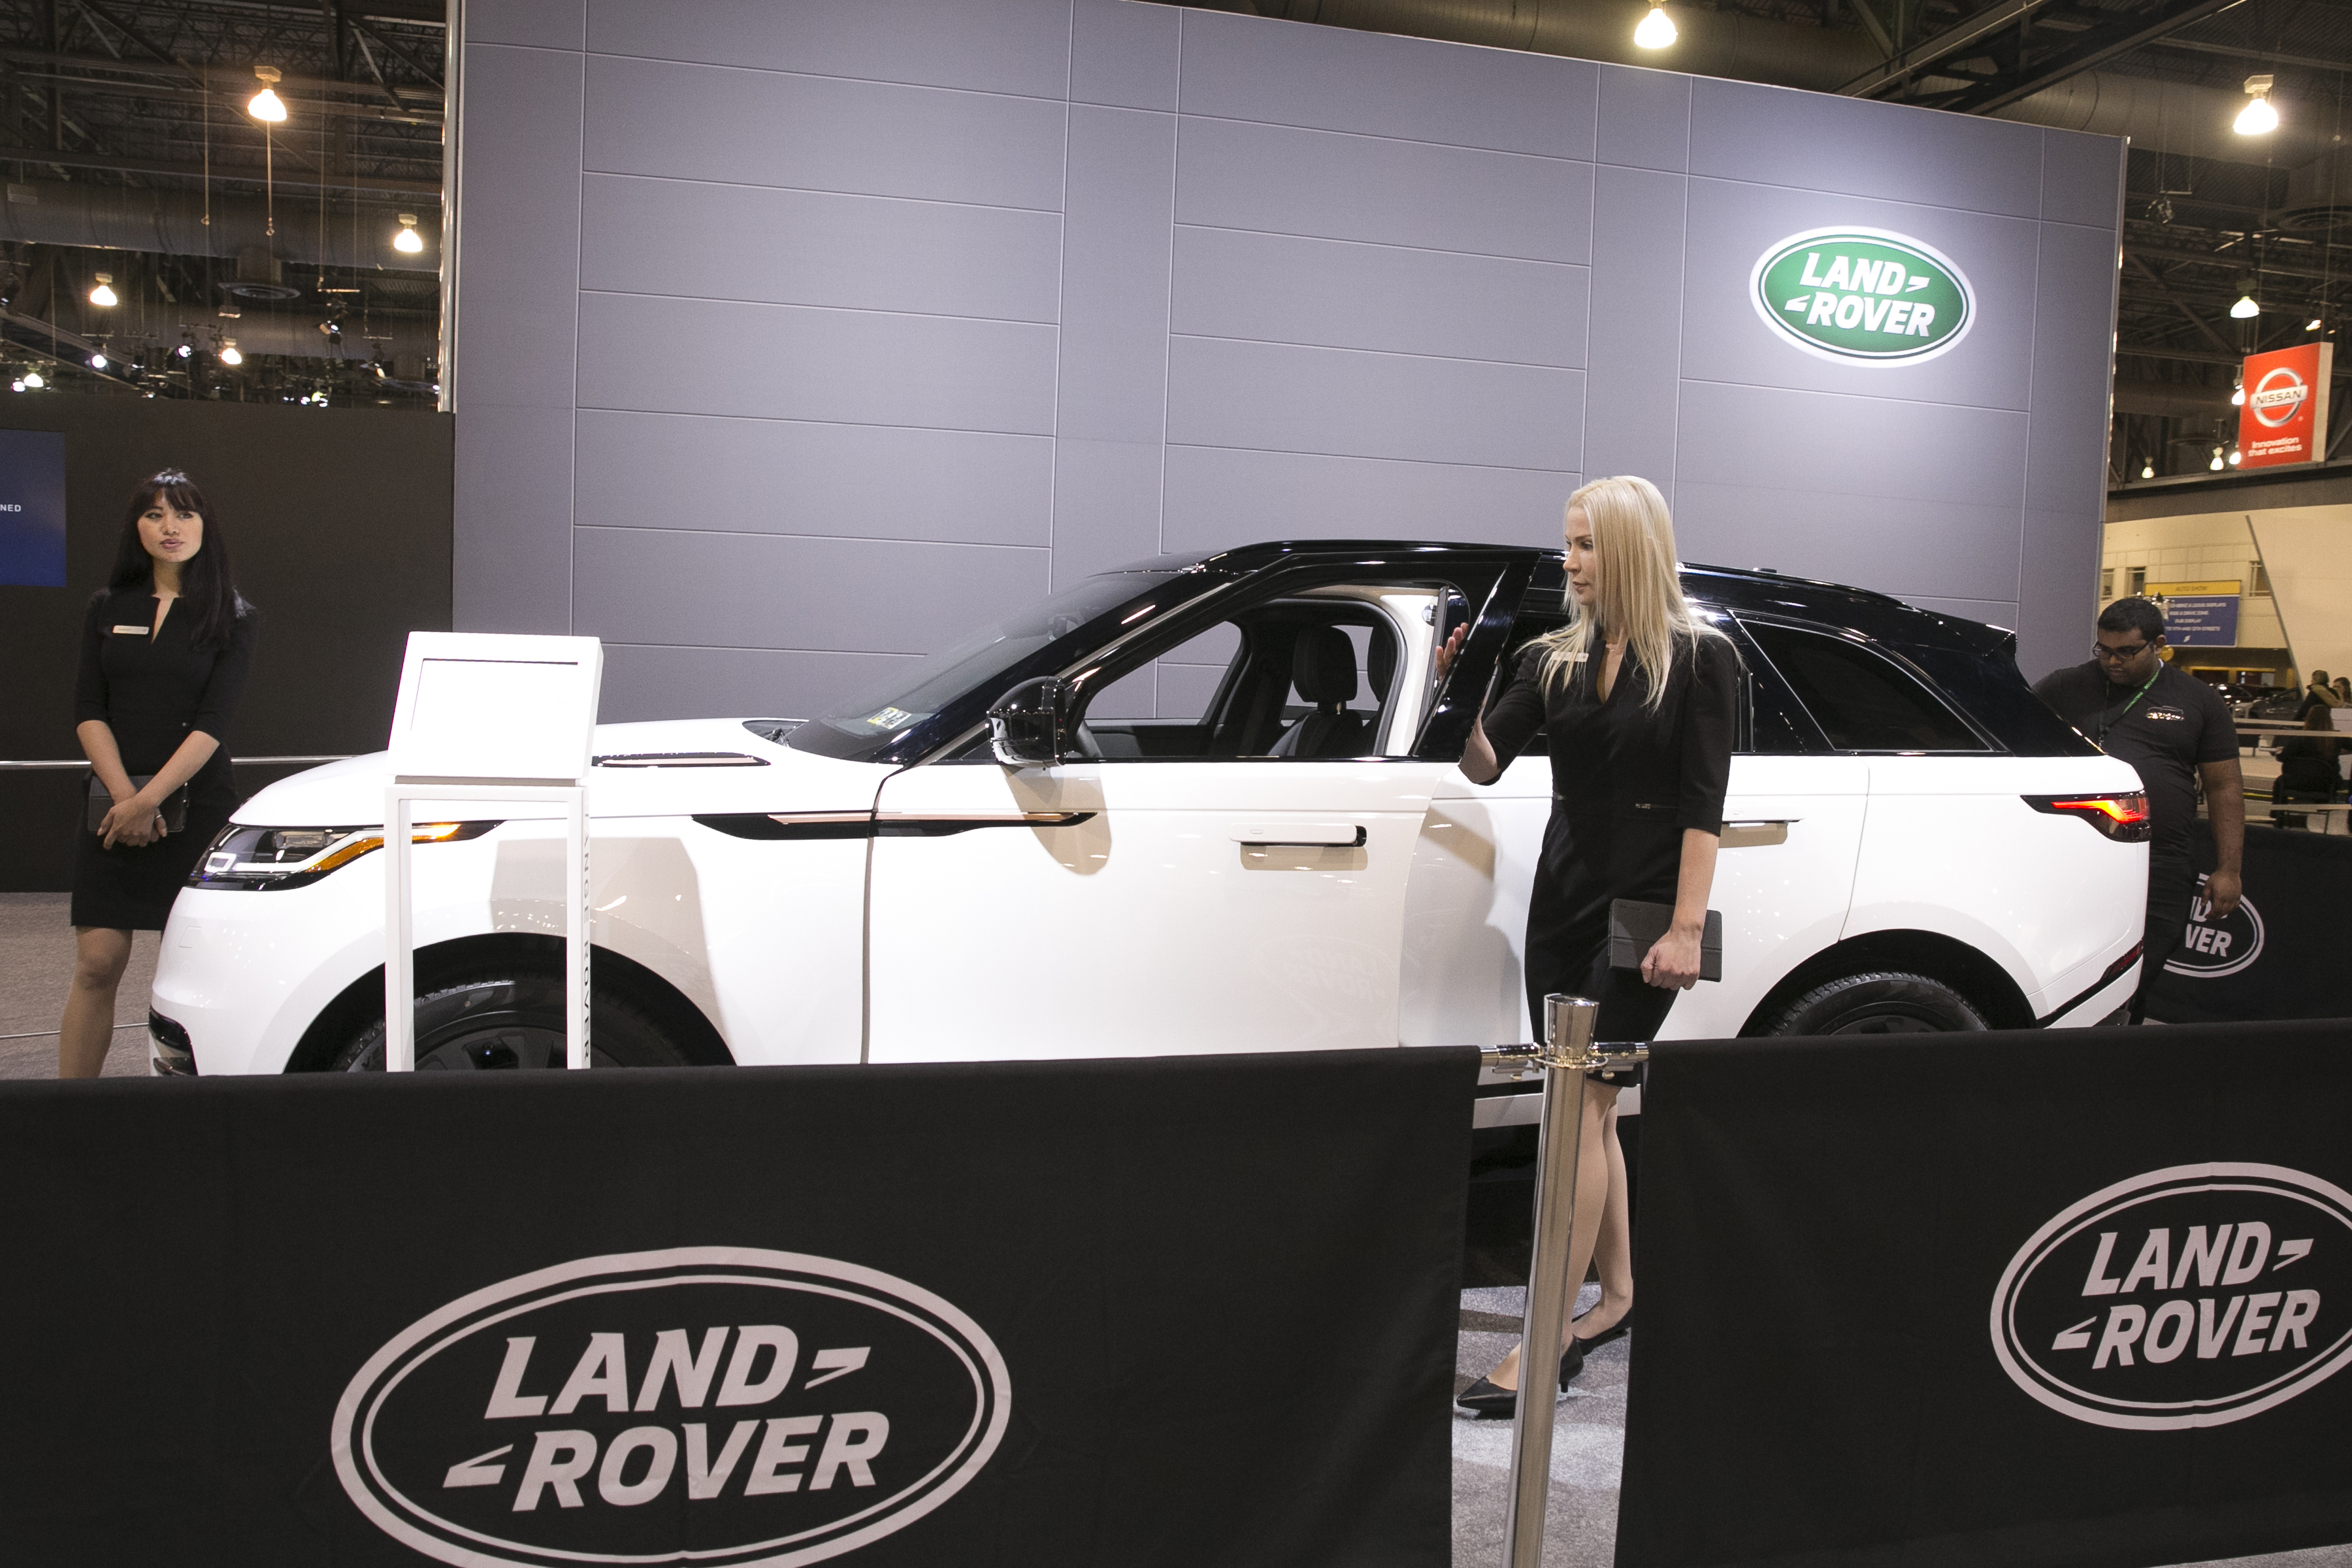 Julienne De Leon, left, and Mary Boike, center, stand near a Range Rover Velar, during the Manufacturers´ preview of the Philadelphia Auto Show, at the Philadelphia Convention Center, Friday, Jan. 26, 2018. JESSICA GRIFFIN / Staff Photographer